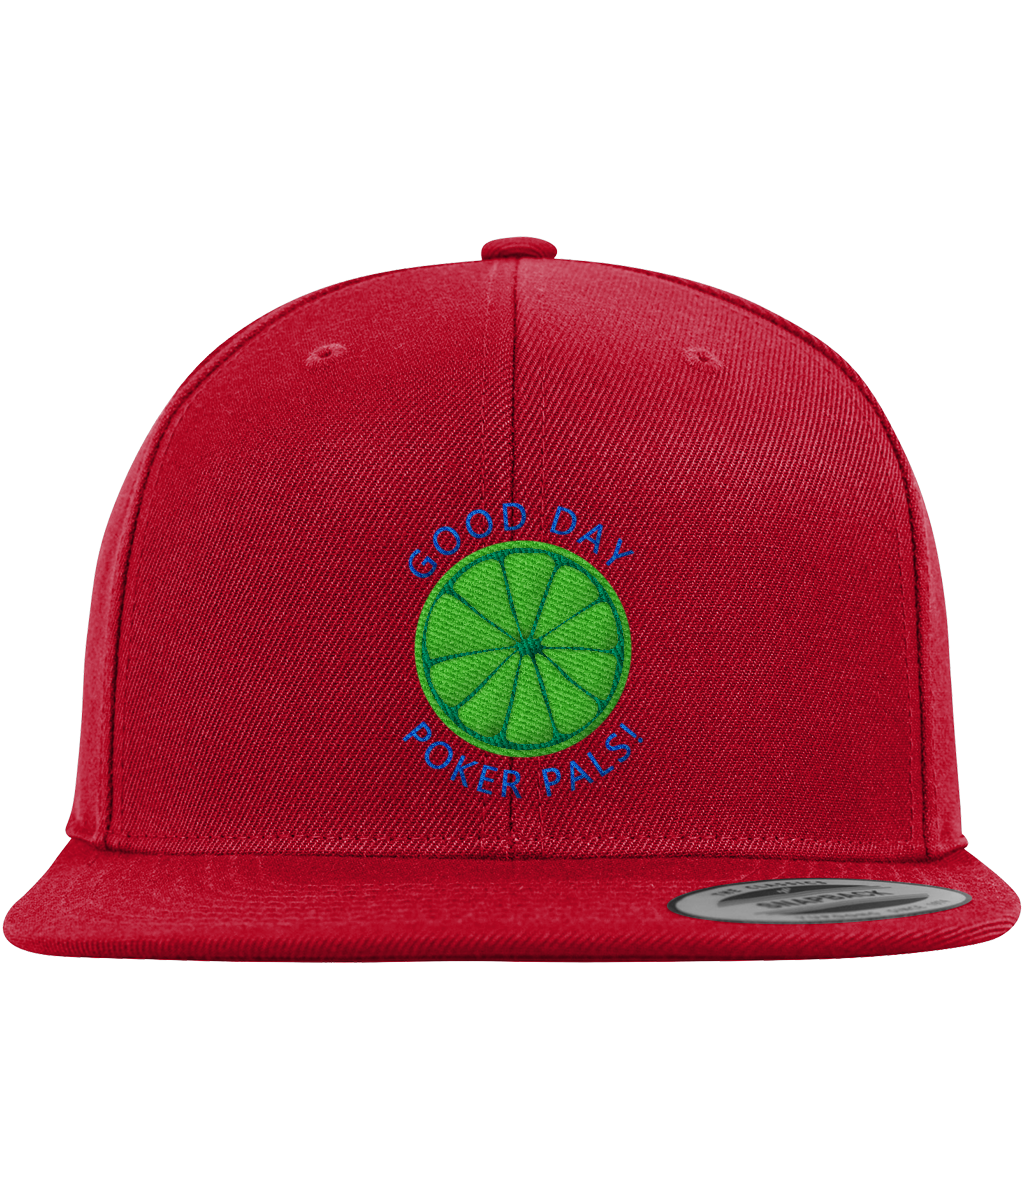 Limerickey Snapback Cap - Red